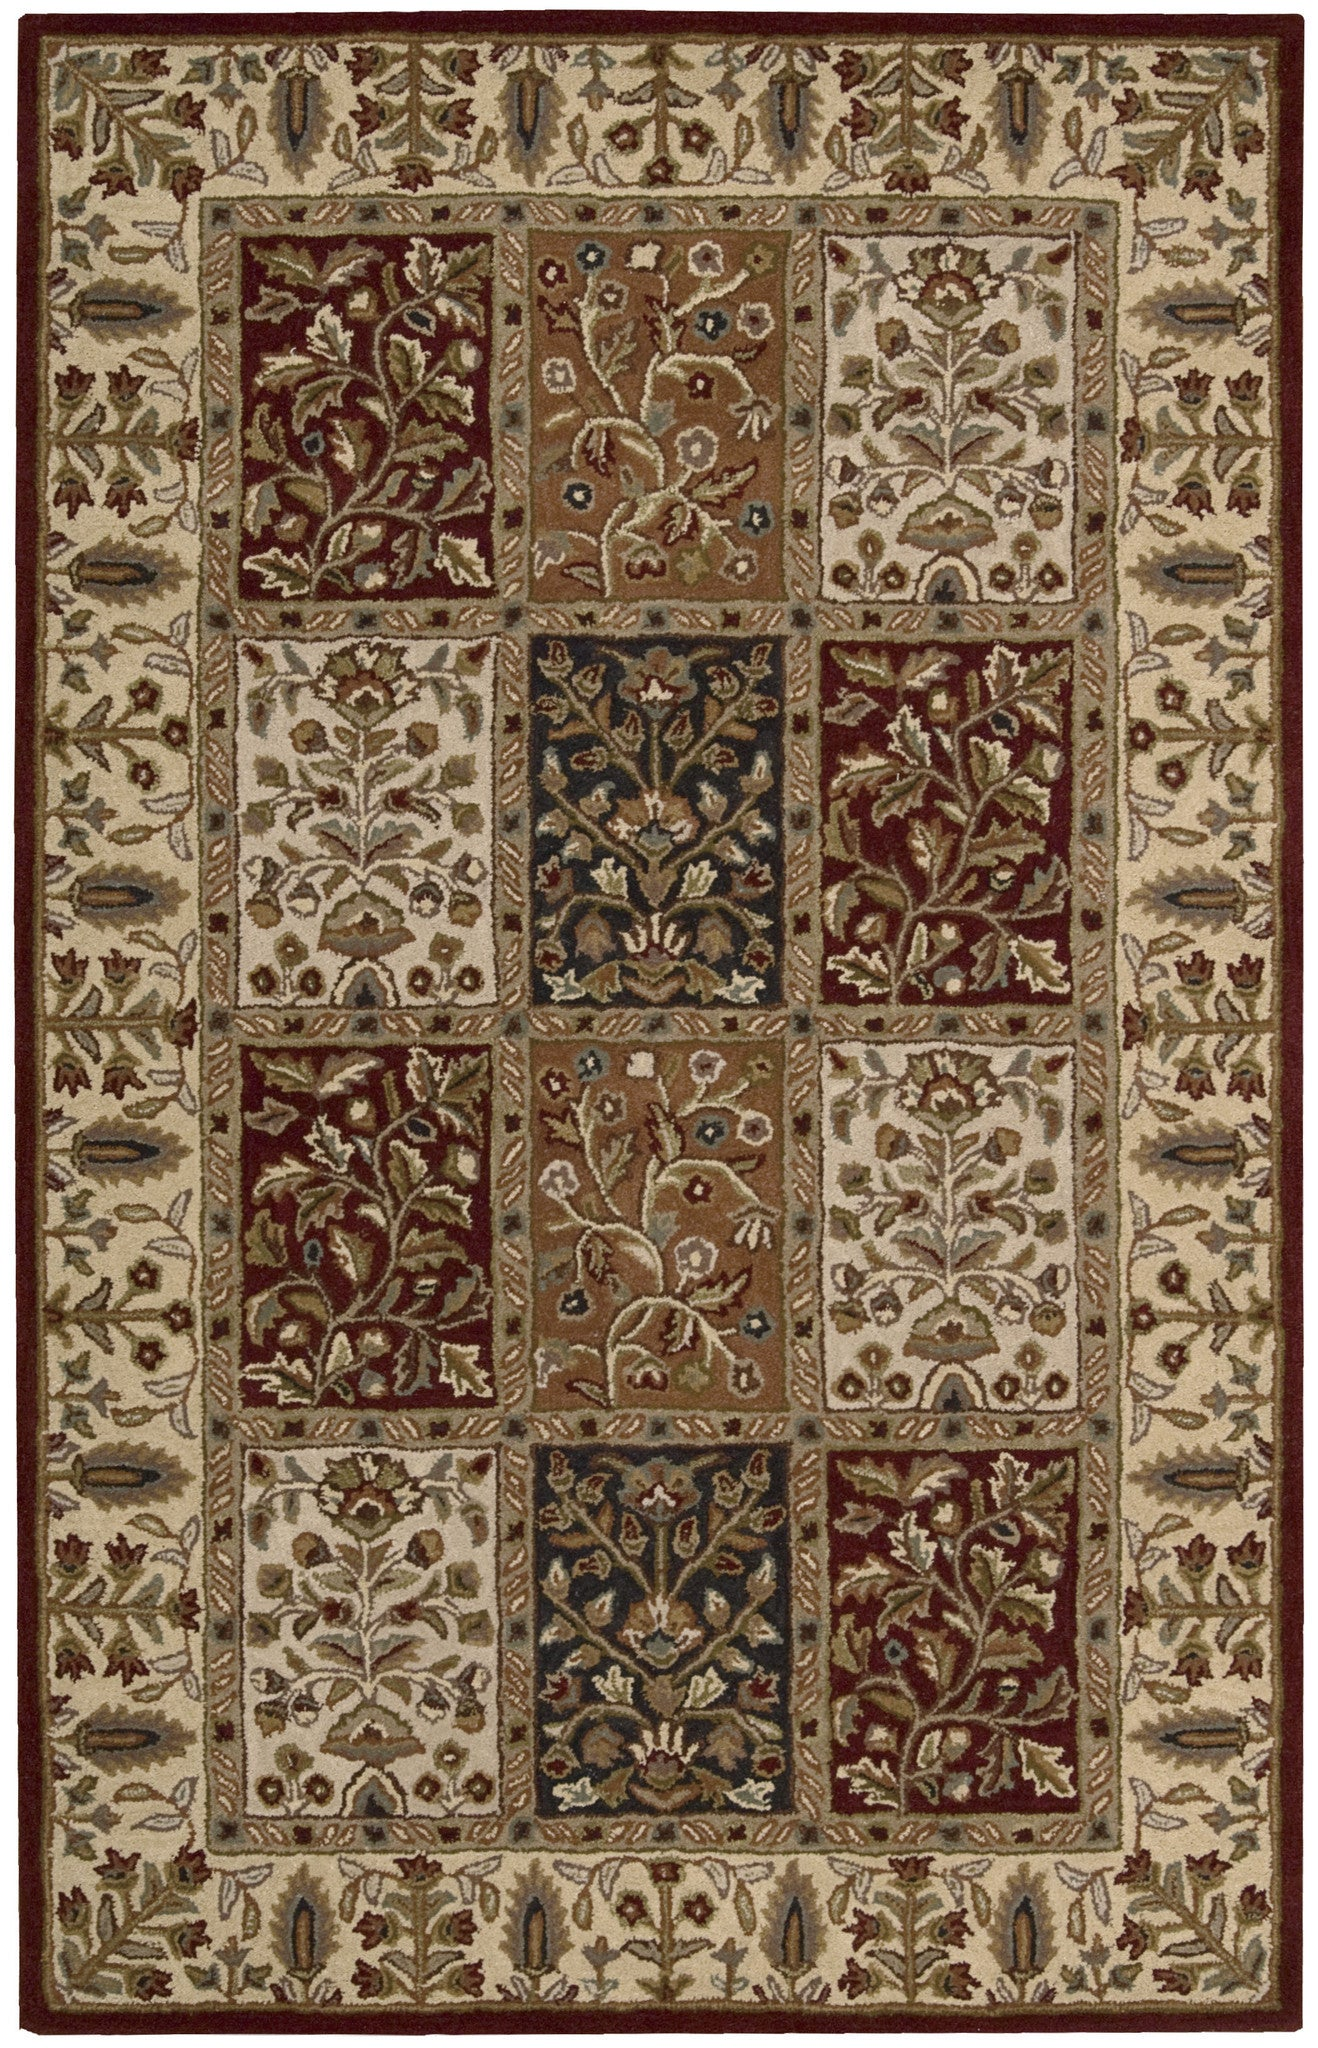 Nourison India House Multicolor Area Rug IH70 MTC (Rectangle) u2013 RugMethod